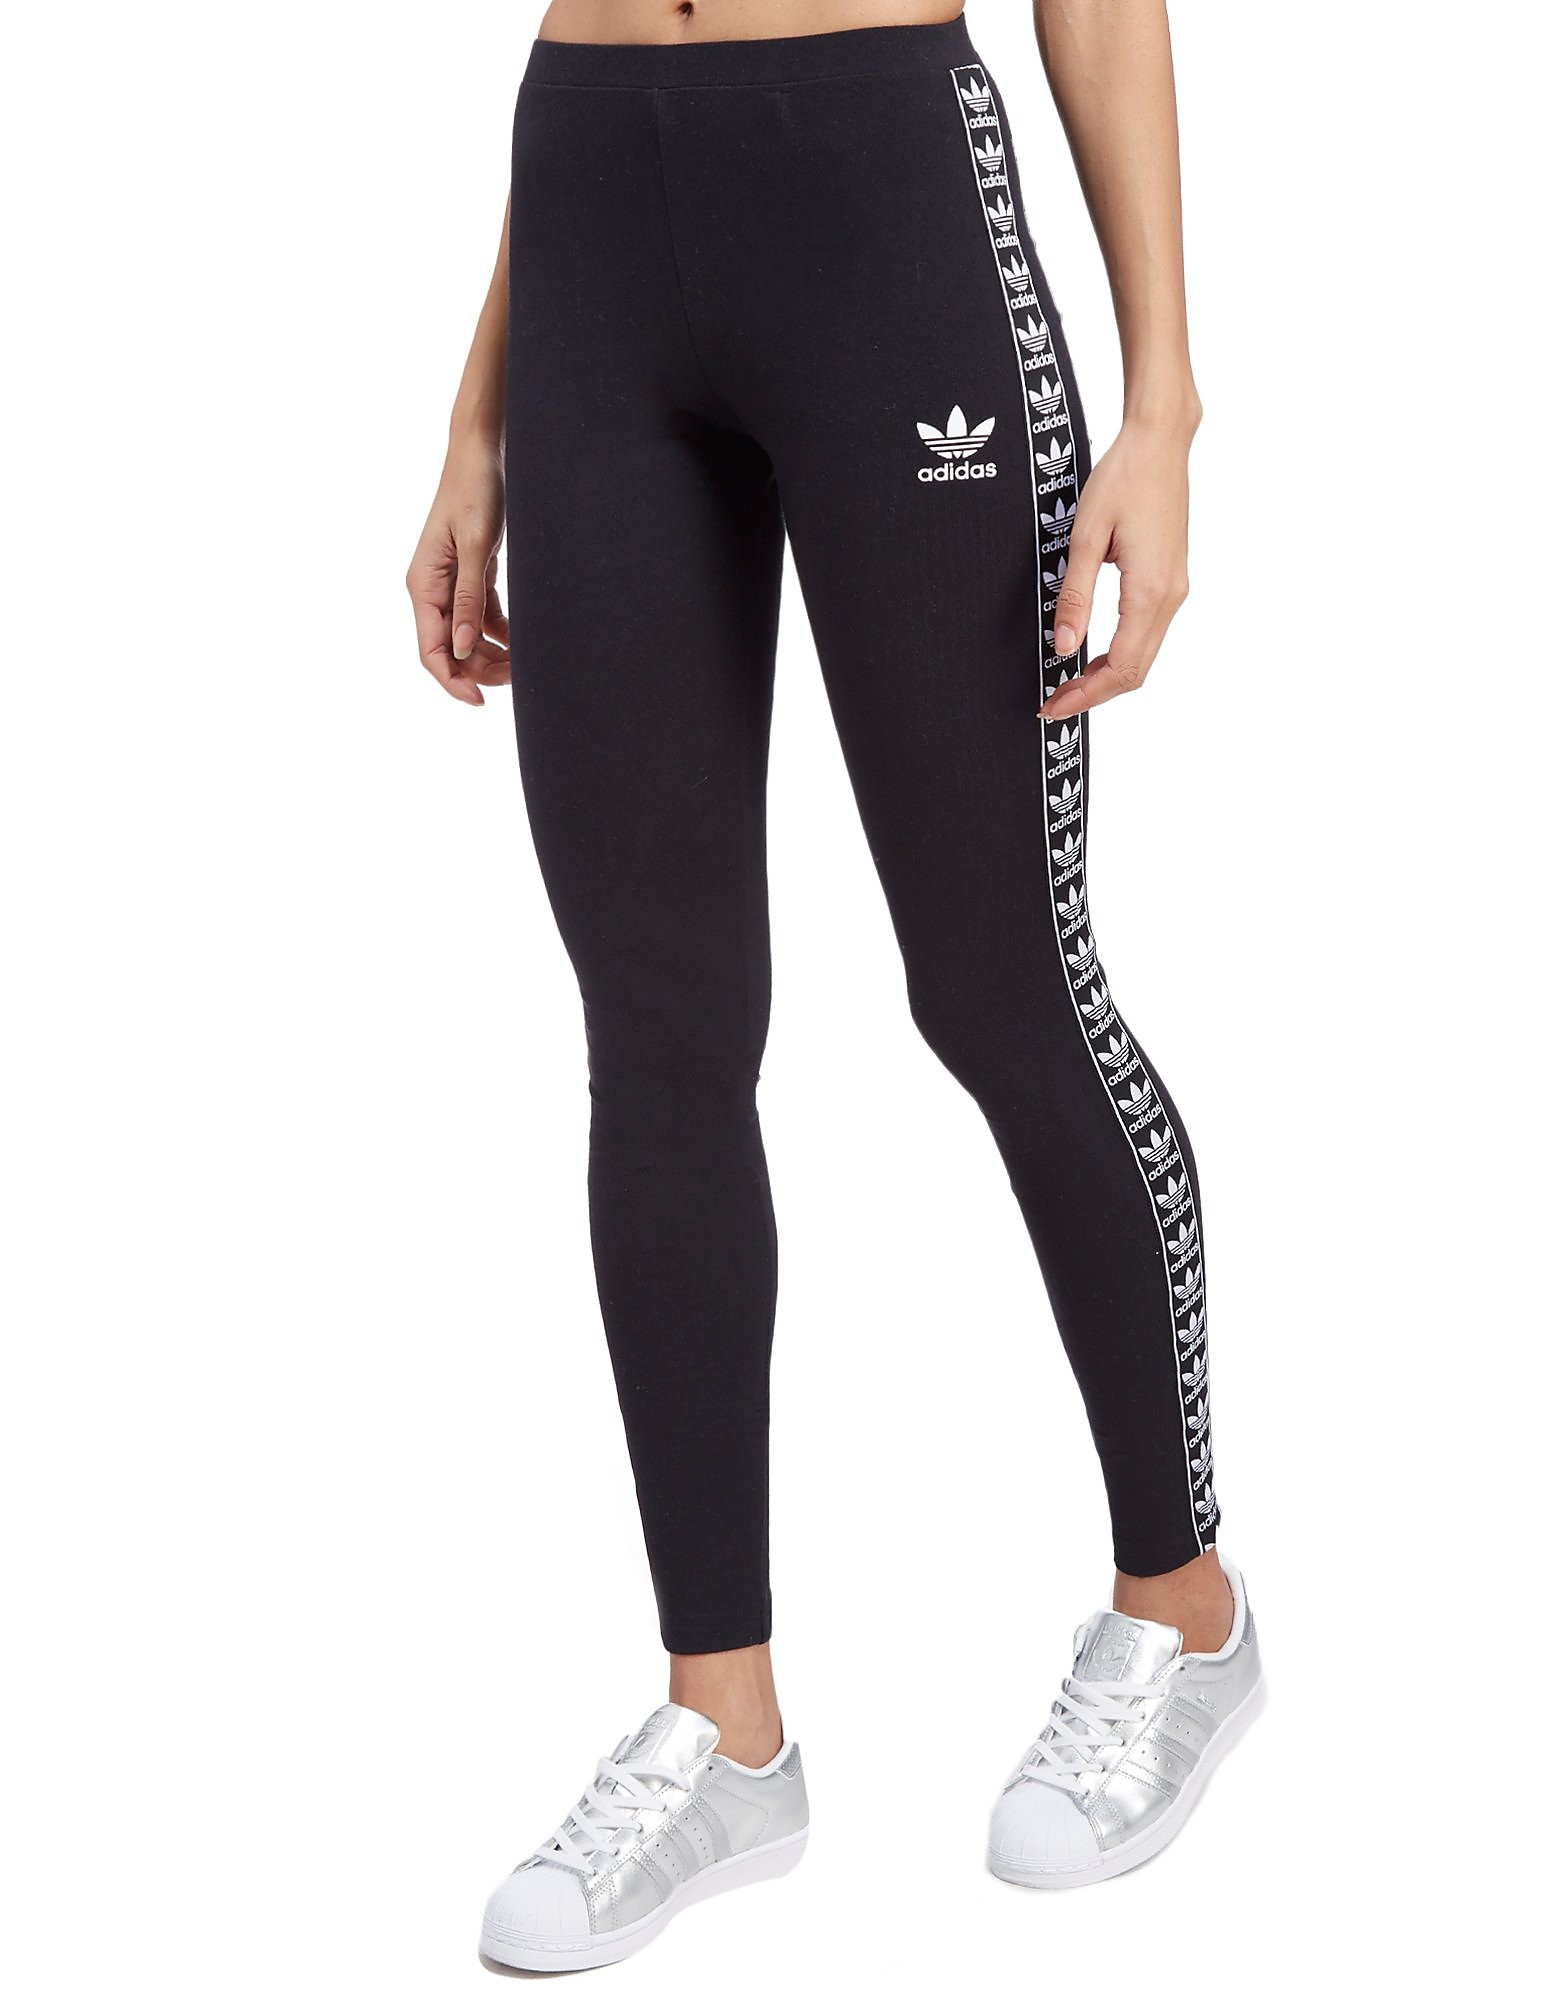 Find adidas women tights at ShopStyle. Shop the latest collection of adidas women tights from the most popular stores - all in one place.